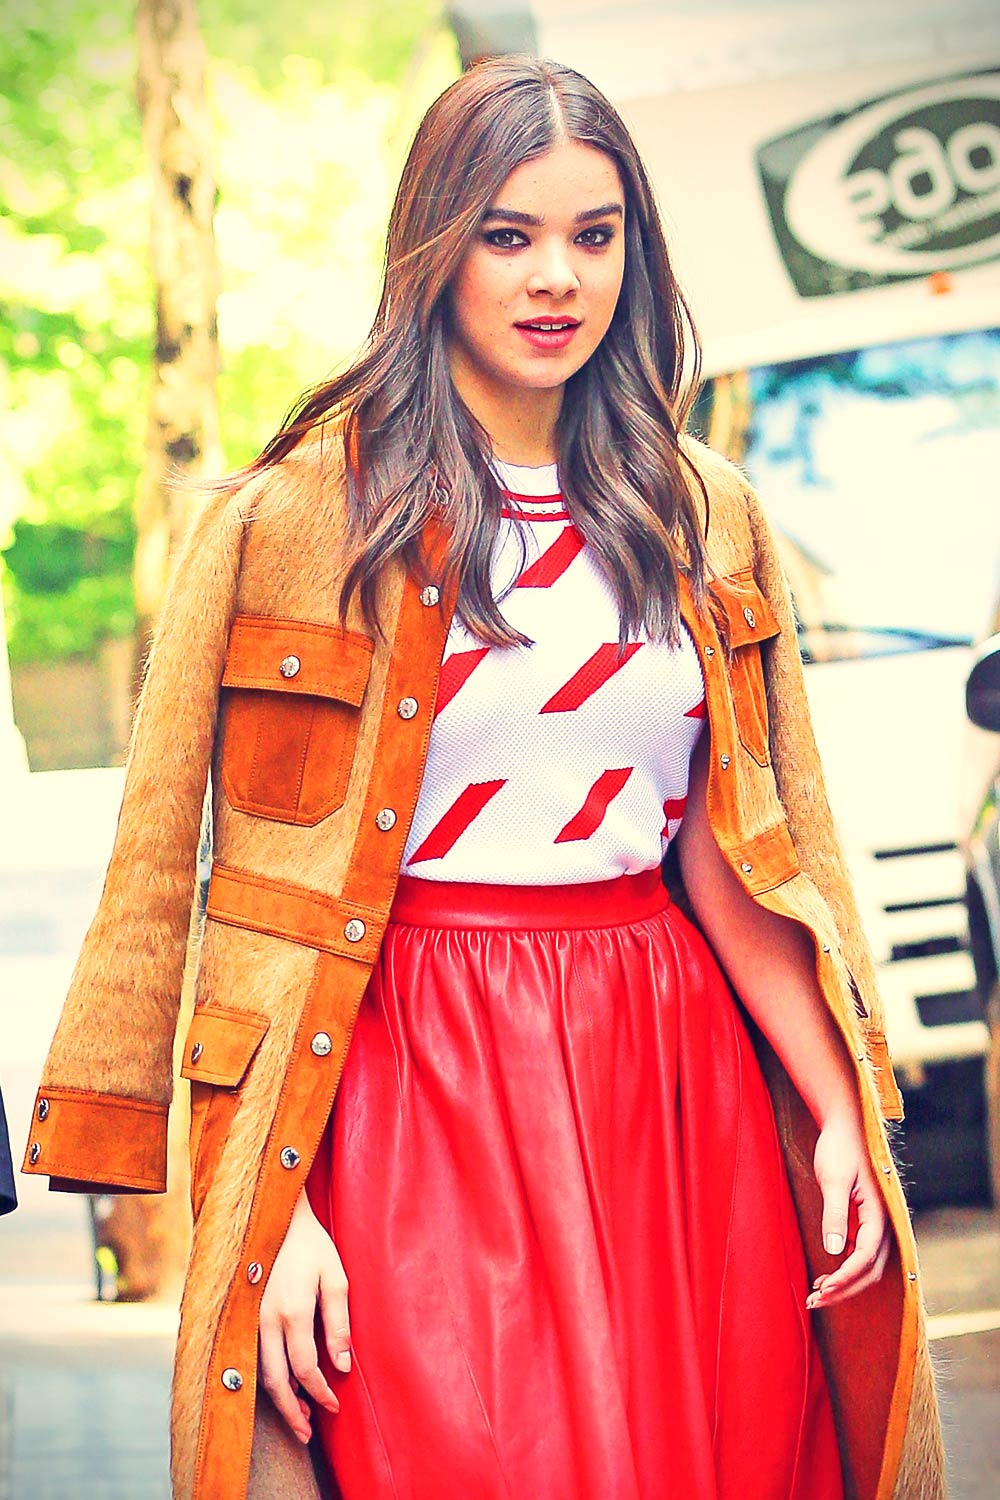 Hailee Steinfeld leaving The View in NYC